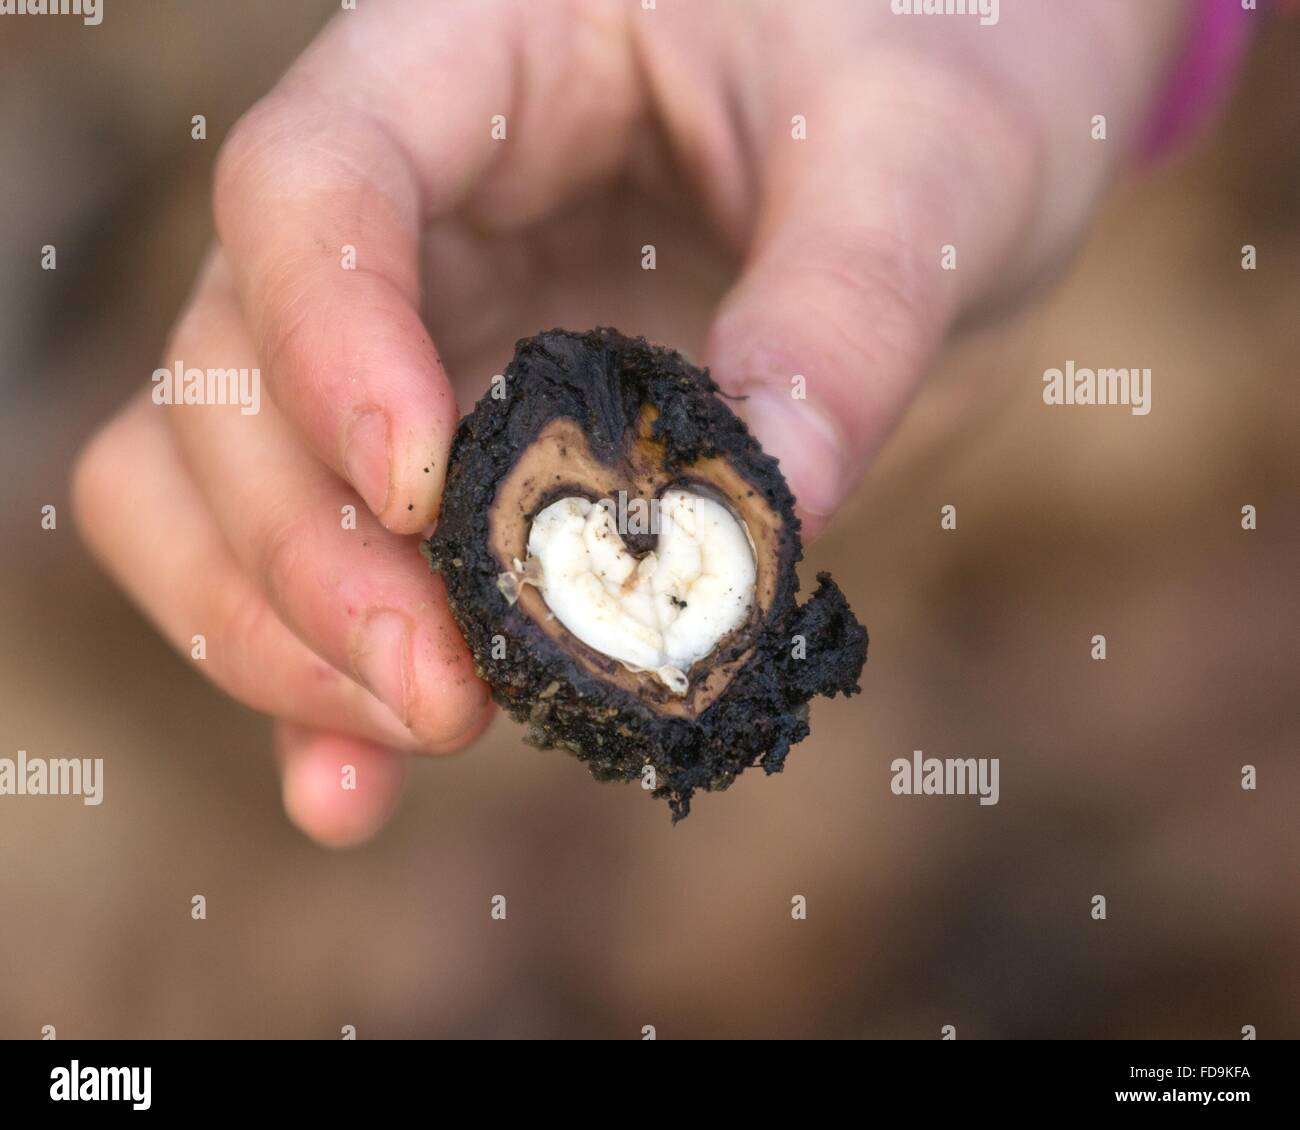 Cropped Hand Holding Heart Shape Water Chestnut - Stock Image